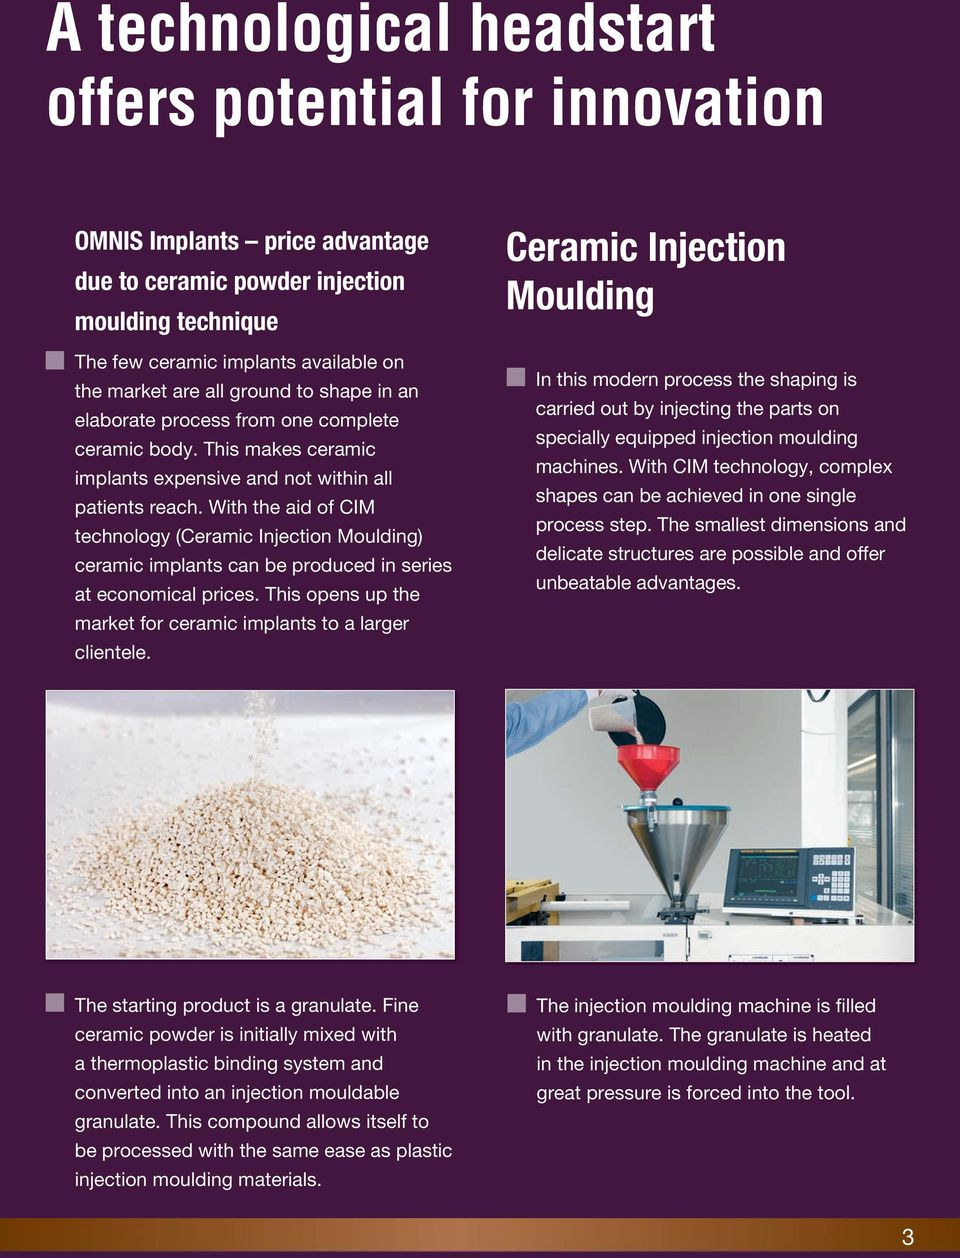 With the aid of CIM technology (Ceramic Injection Moulding) ceramic implants can be produced in series at economical prices. This opens up the market for ceramic implants to a larger clientele.